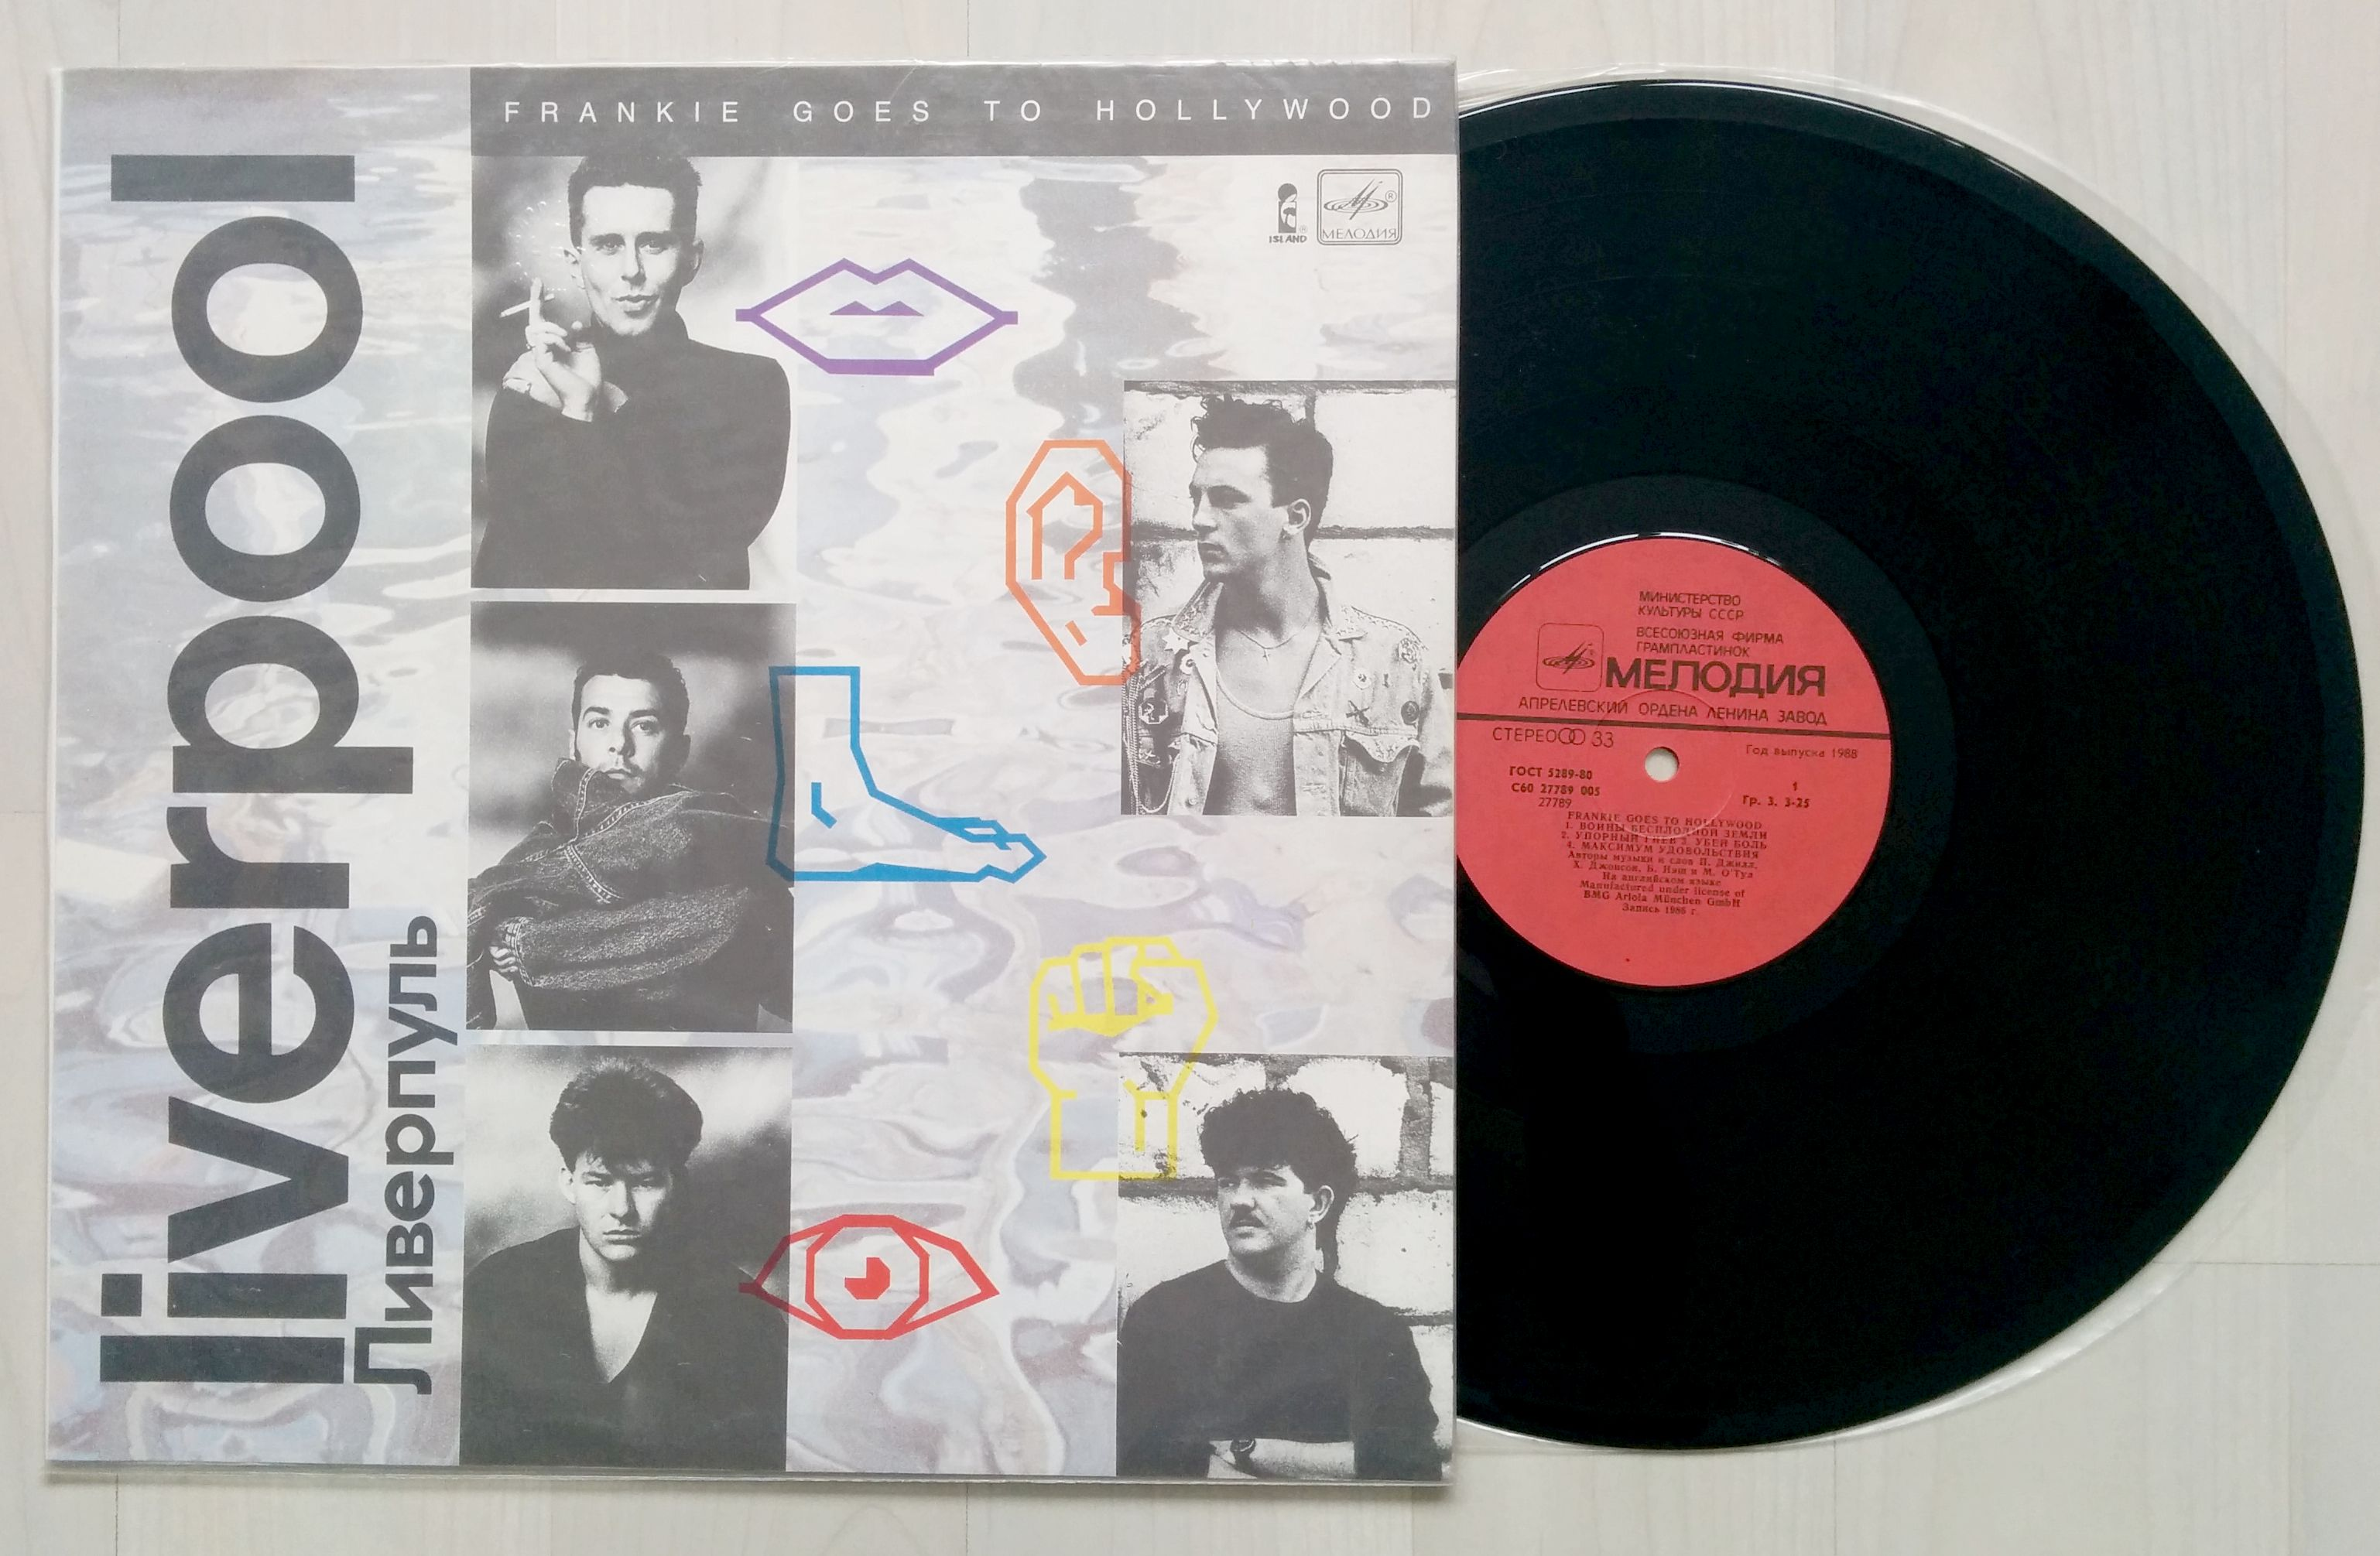 Frankie Goes To Hollywood Liverpool (unplayed vinyl, Aprelevka plant red Melodia label)